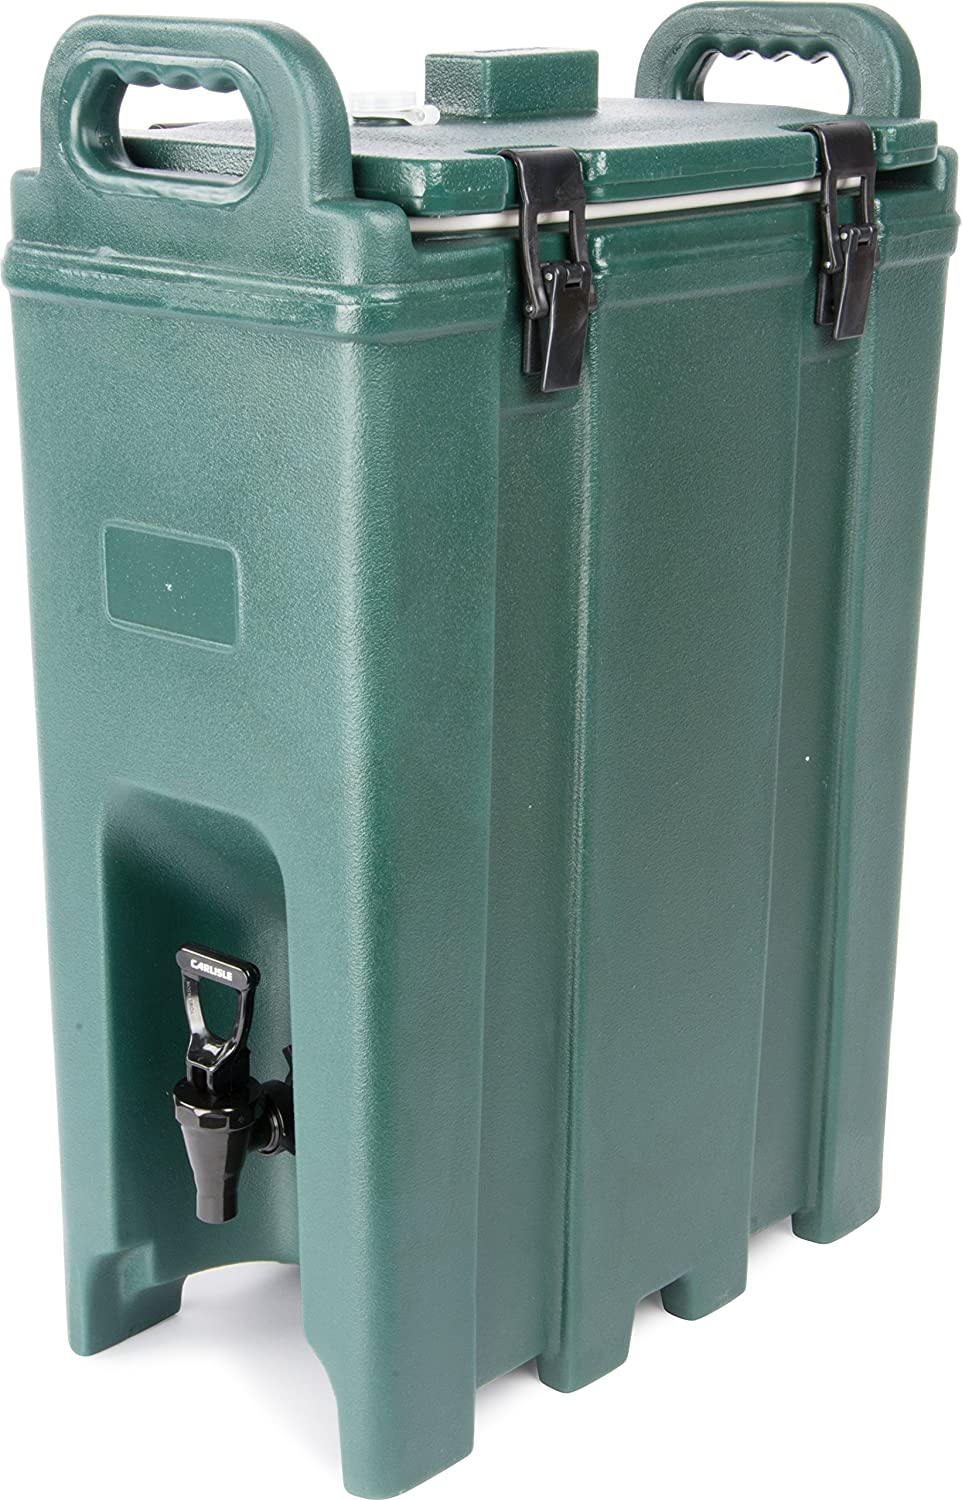 Carlisle LD500N08 Cateraide Insulated Beverage Server/Dispenser, 5 Gallon, Forest Green